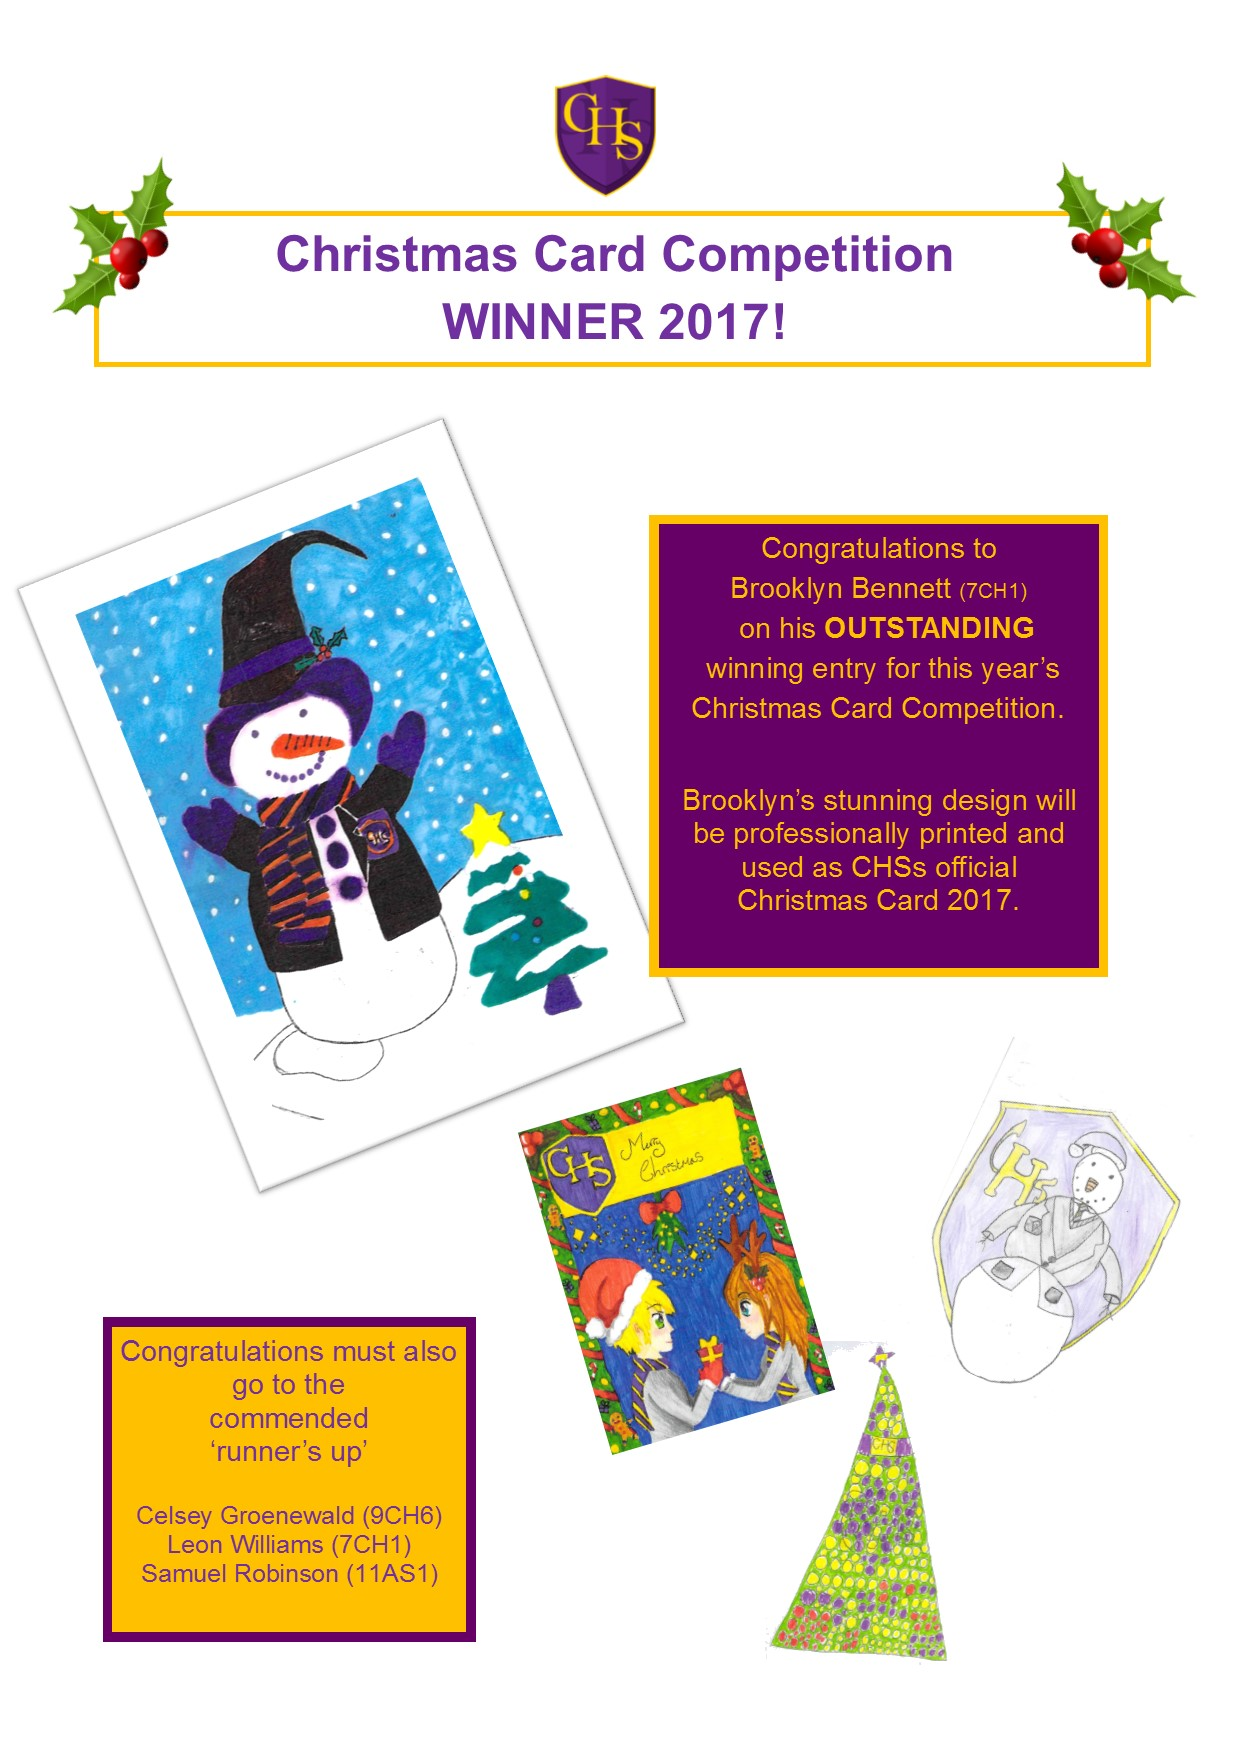 Perfect XMAS CARD COMP WINNER 2017   Website